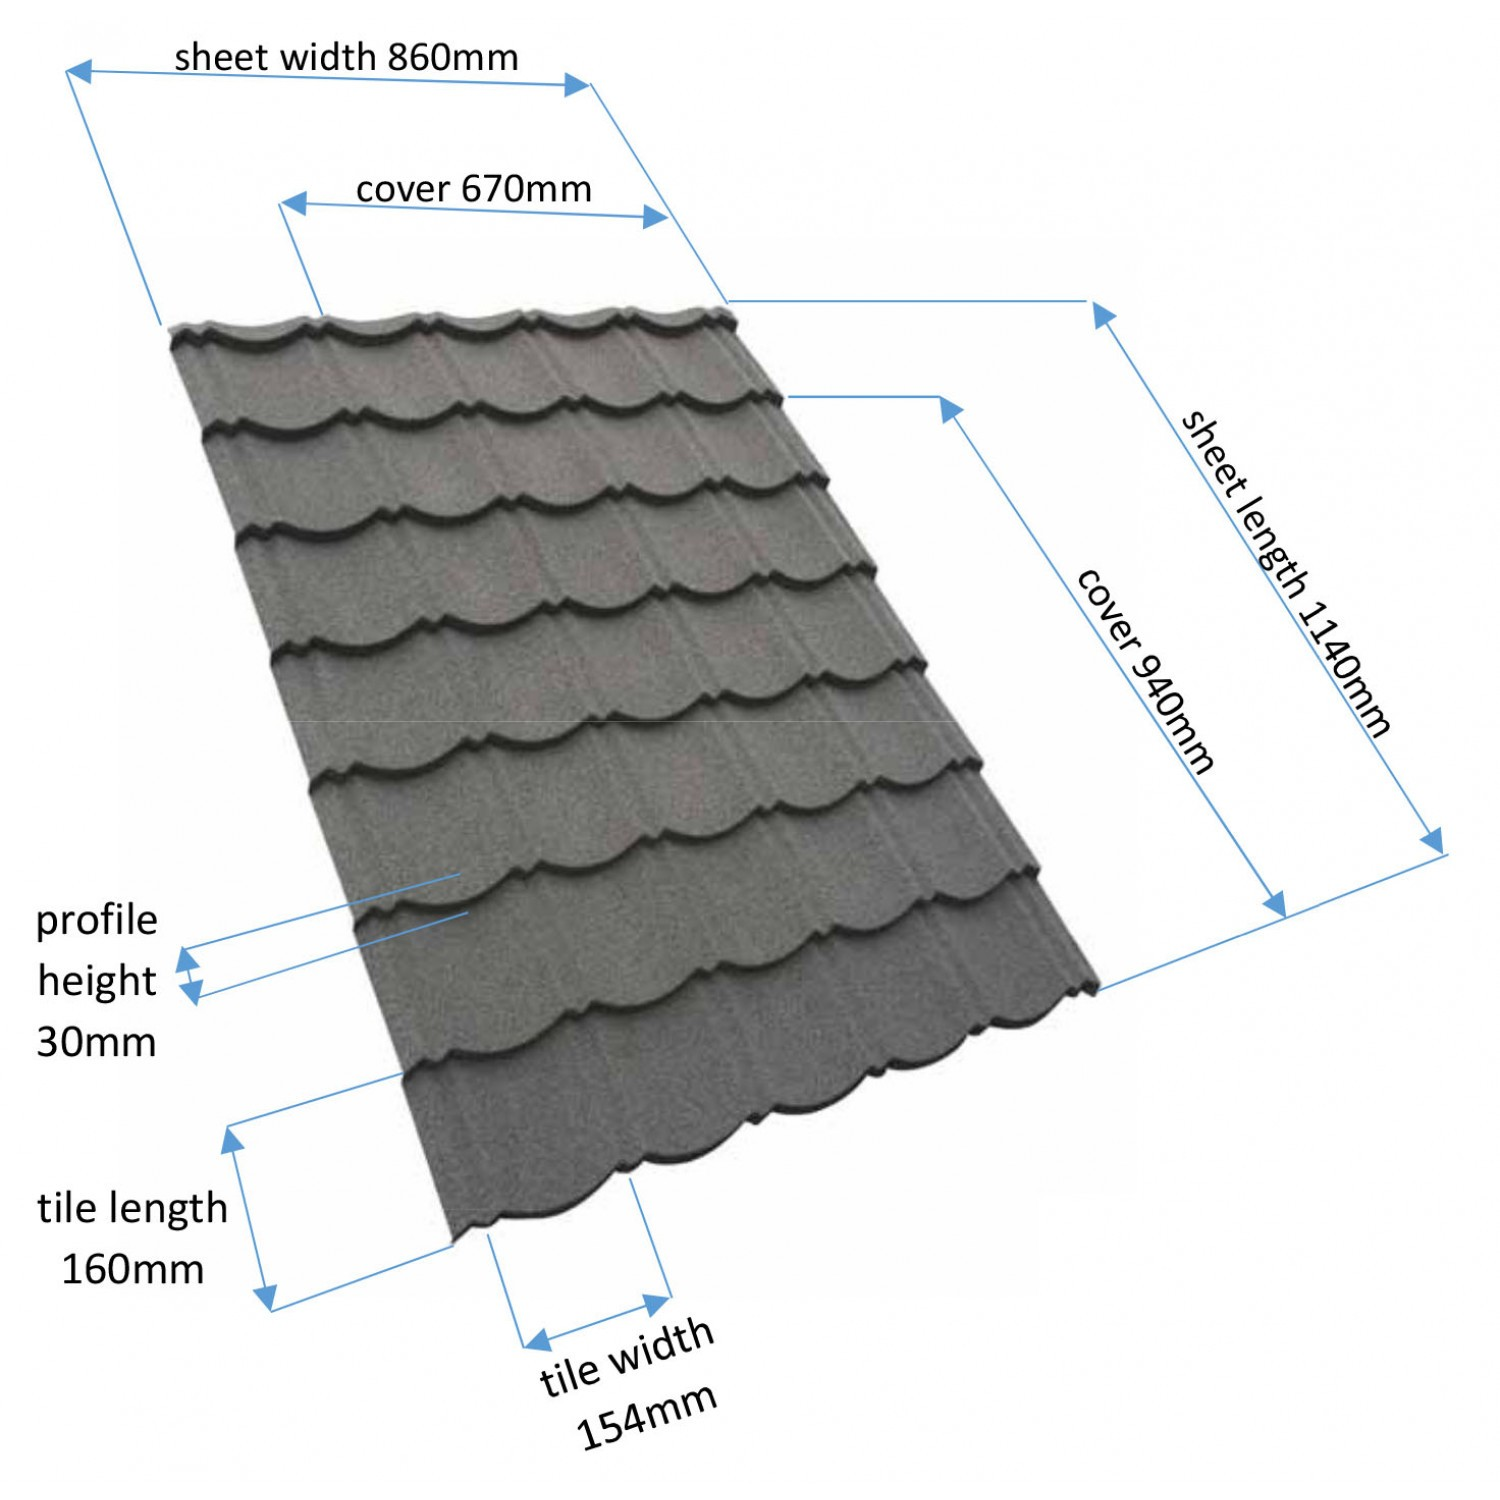 a3bf3eb748 ... Metal Roofing Sheet - Charcoal (1140x860mm) Corotile Technical Data ...